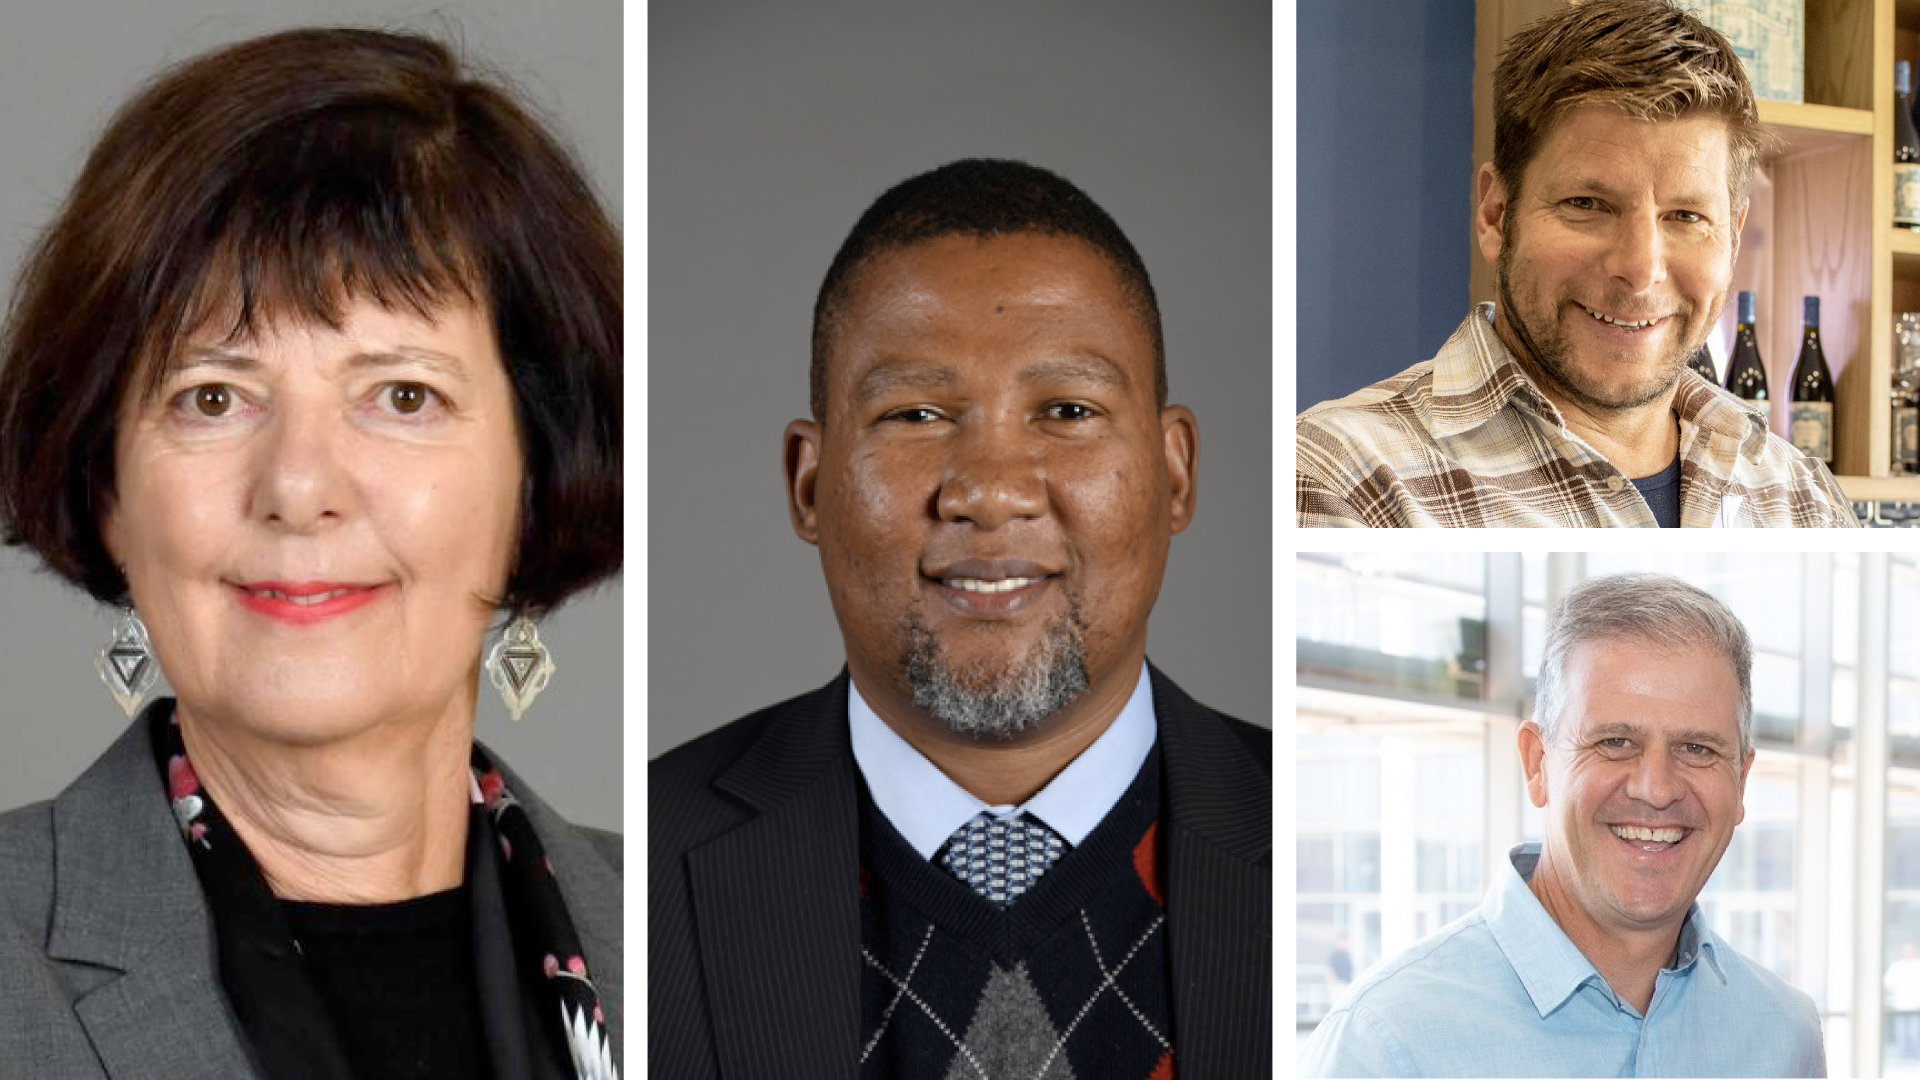 Pictured from left are Barbara Creecy, the minister of fisheries, forestry and the environment, Nkosi Zwelivelile Mandela, chairperson of the portfolio committee on agriculture, land and rural development, (top right) Gunter Schultz, Baleia Wines winemaker and general manager and (bottom right) Christo Pienaar, chairperson of the SA National Wine Show Association. Photo: Supplied.